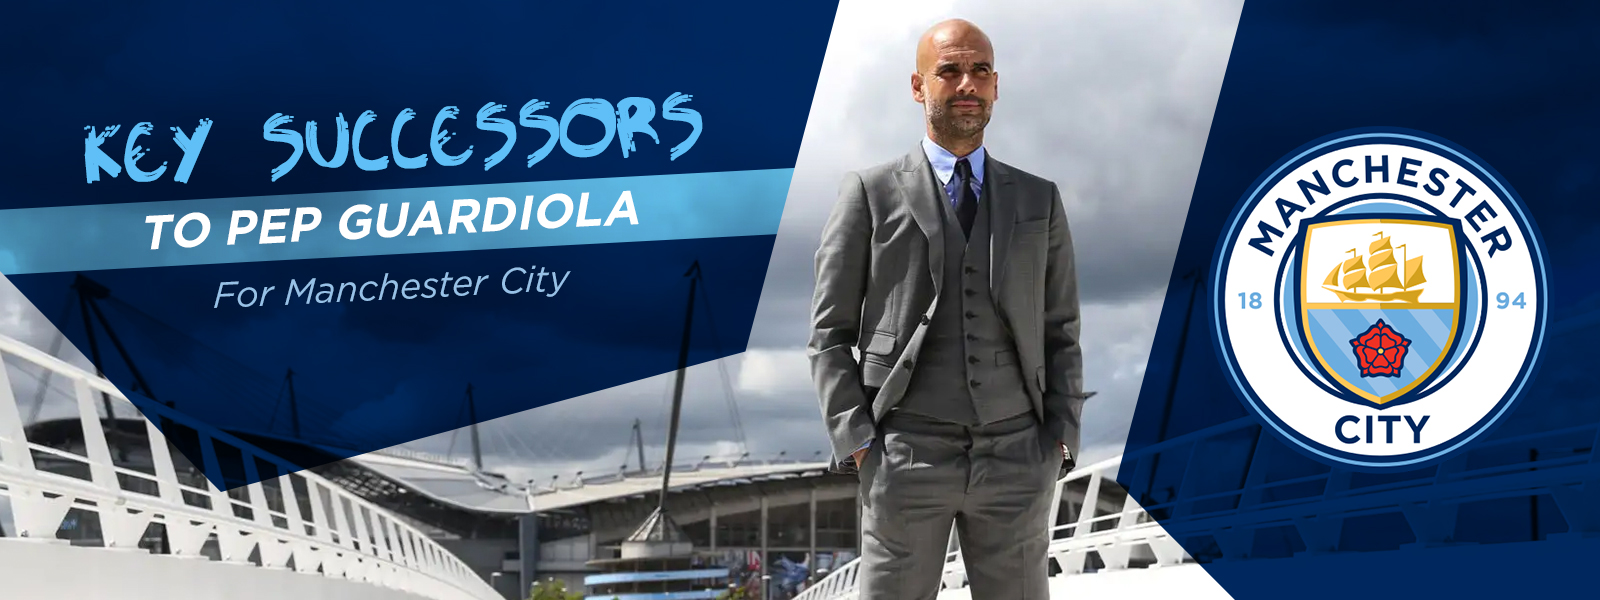 Successors To Pep Guardiola At Manchester City